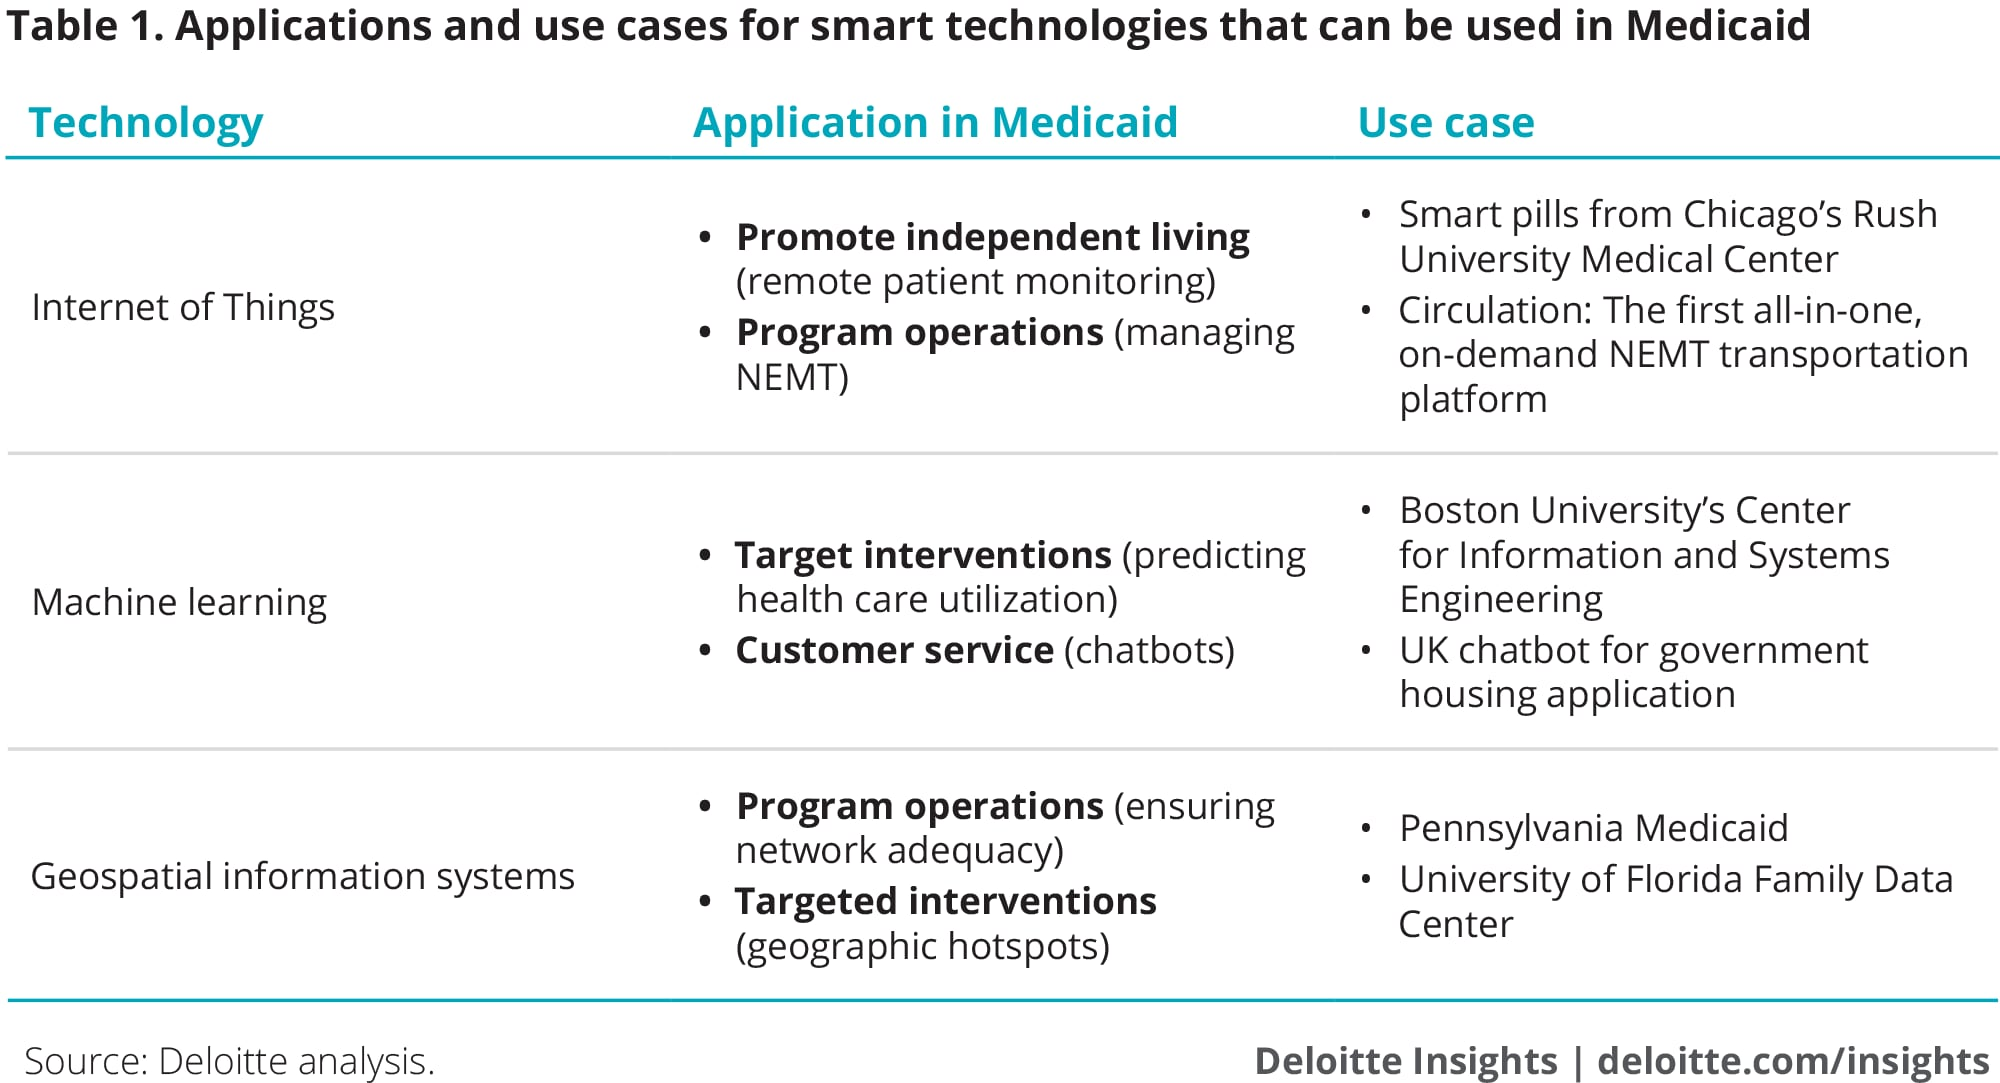 Applications and use cases for smart technologies that can be used in Medicaid